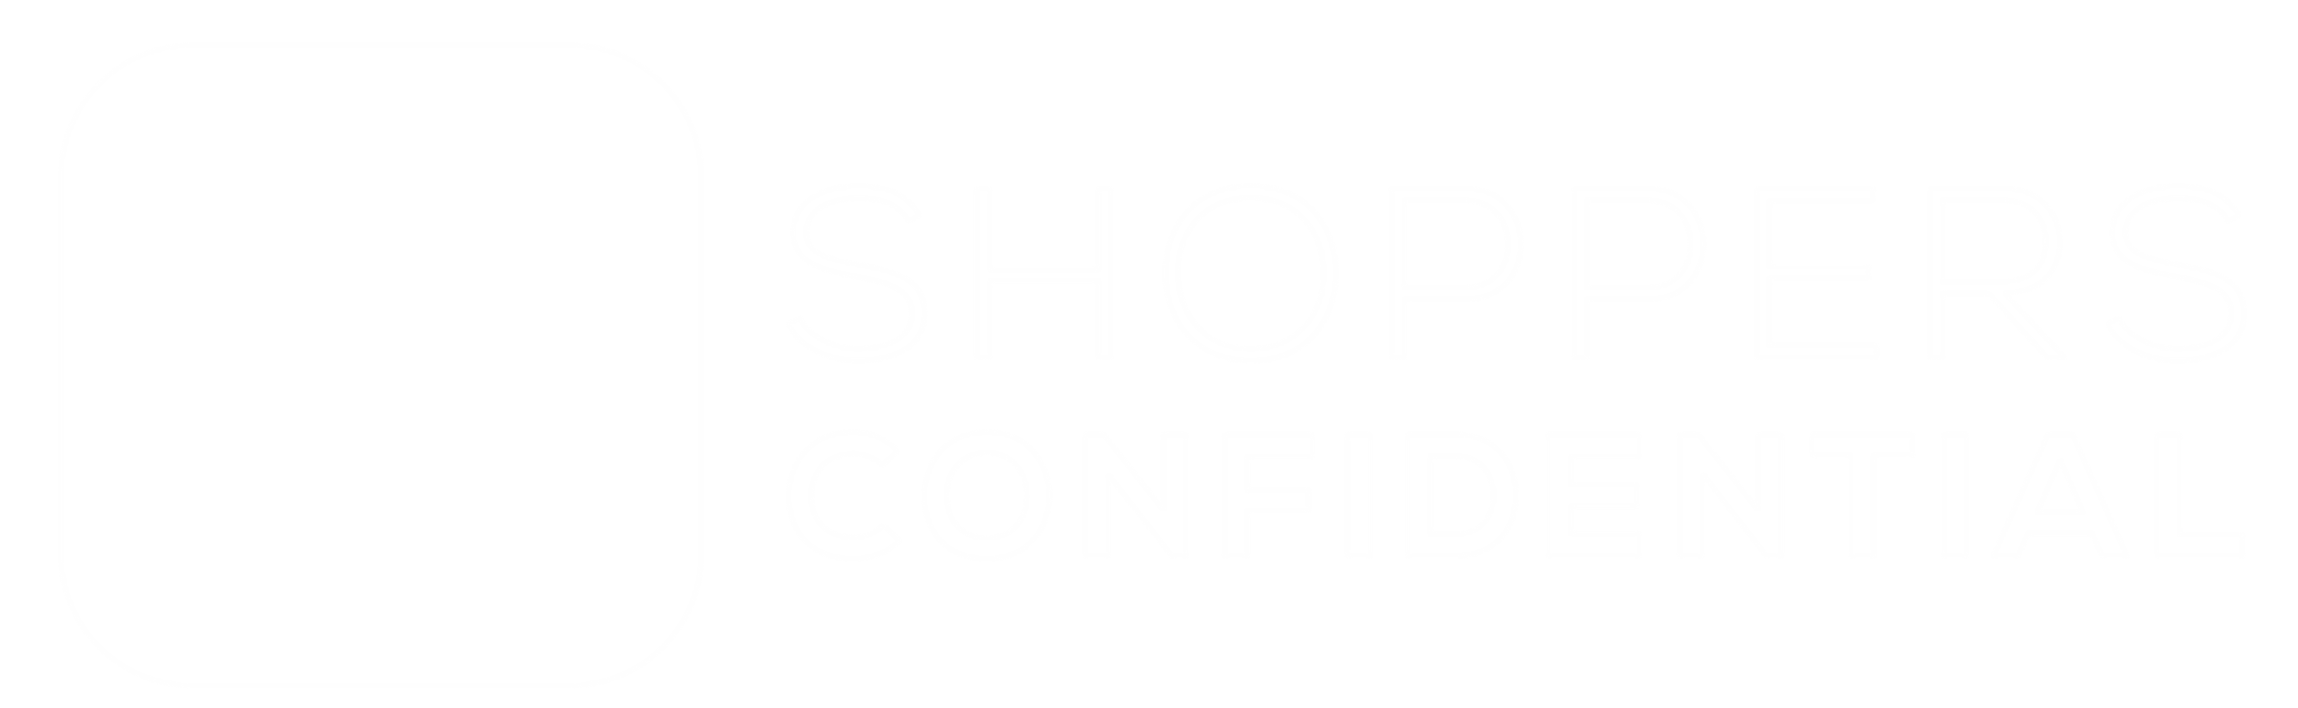 Shoppers Confidential